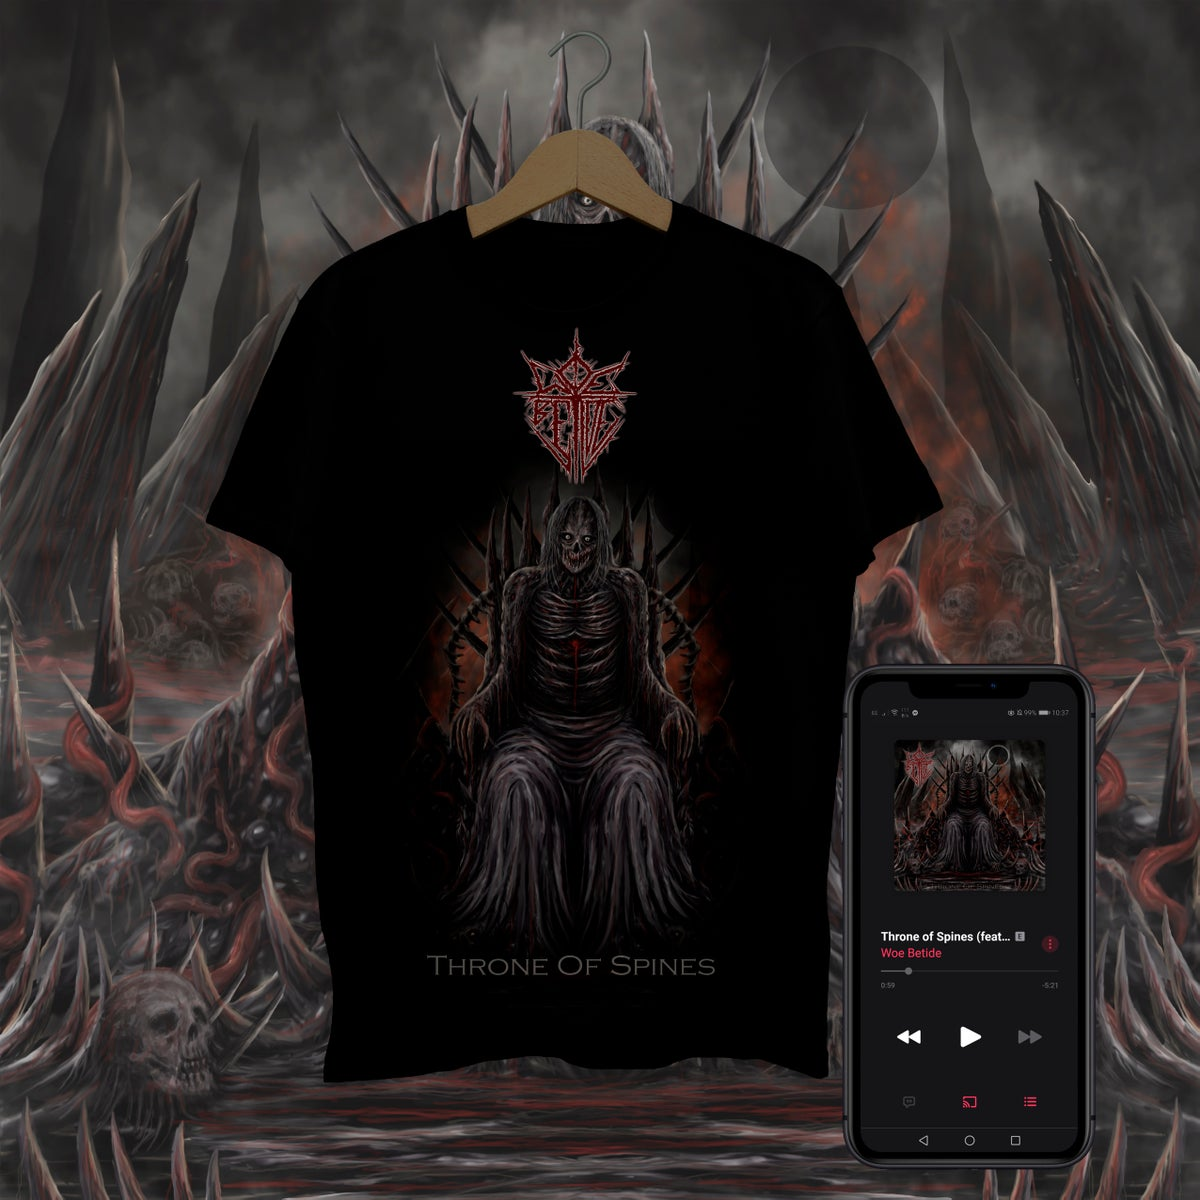 Throne Of Spines T-Shirt with Digital Download Bundle - Pre-order